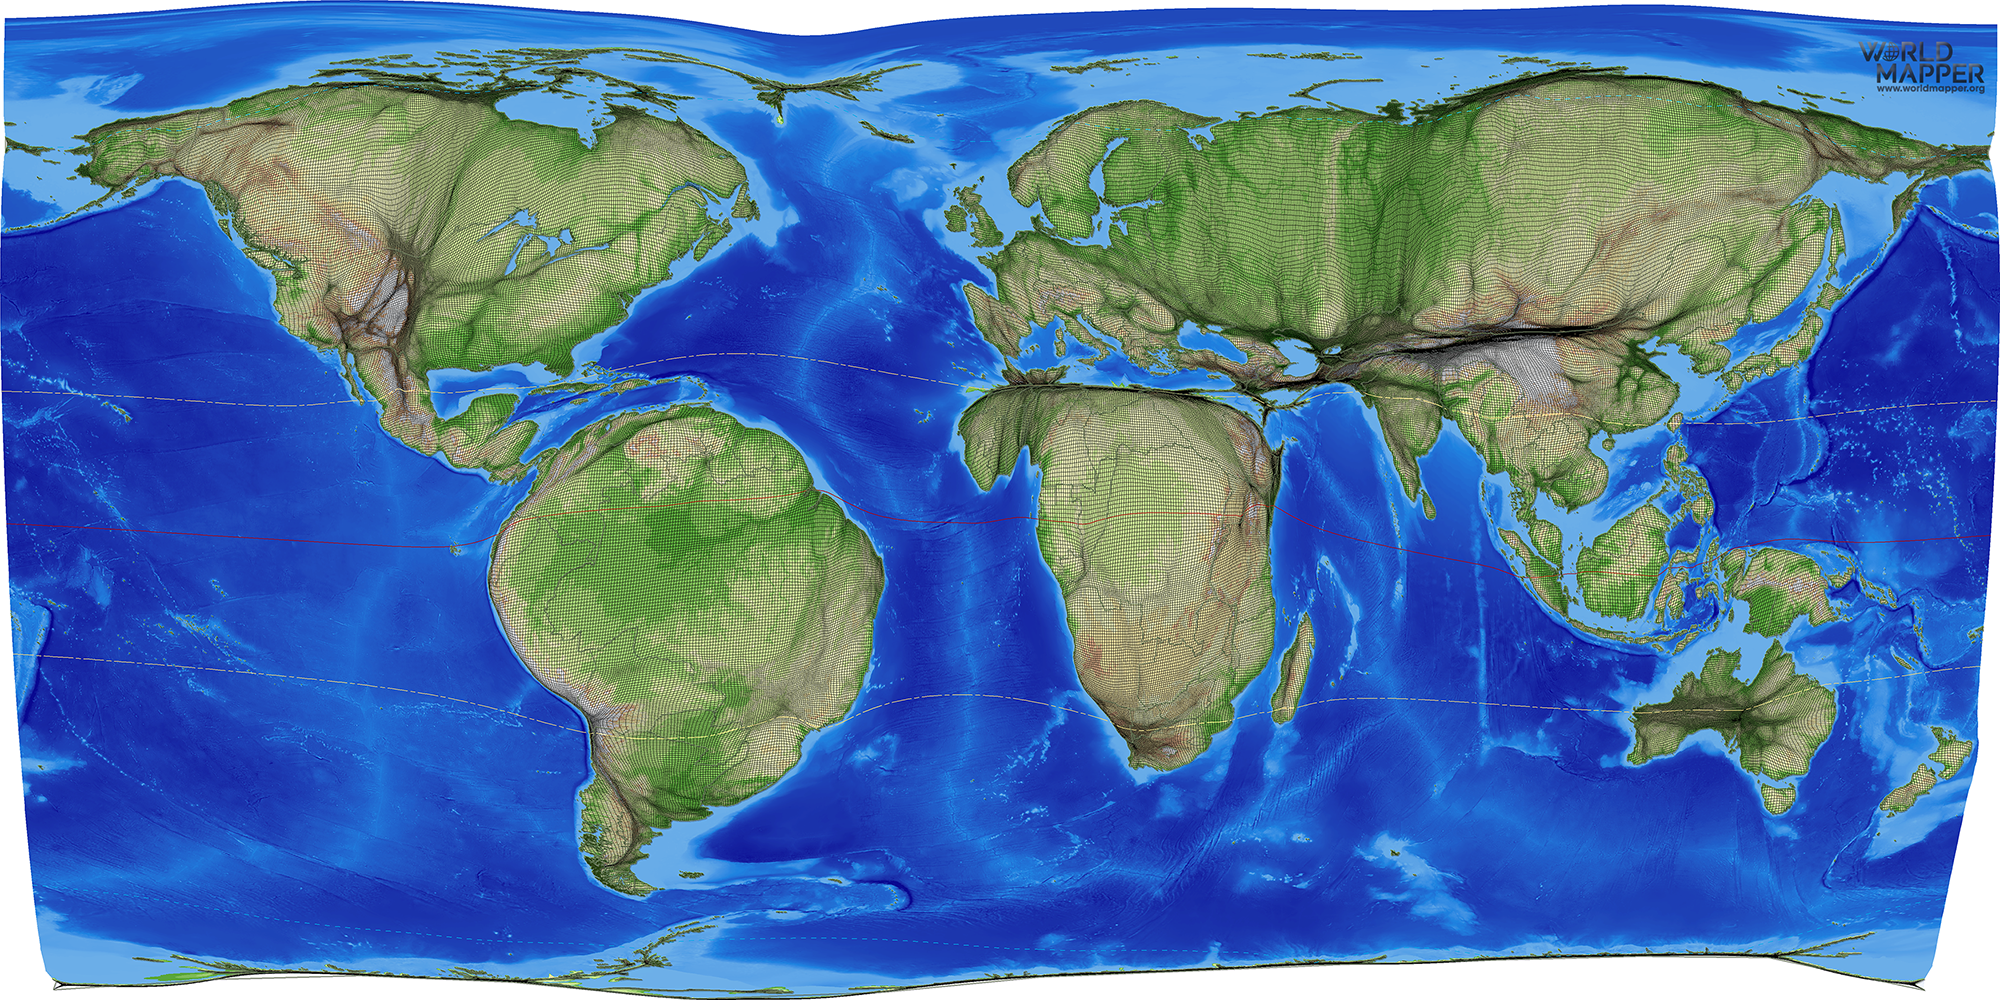 Map Of World Forests.Treecover Forests Worldmapper